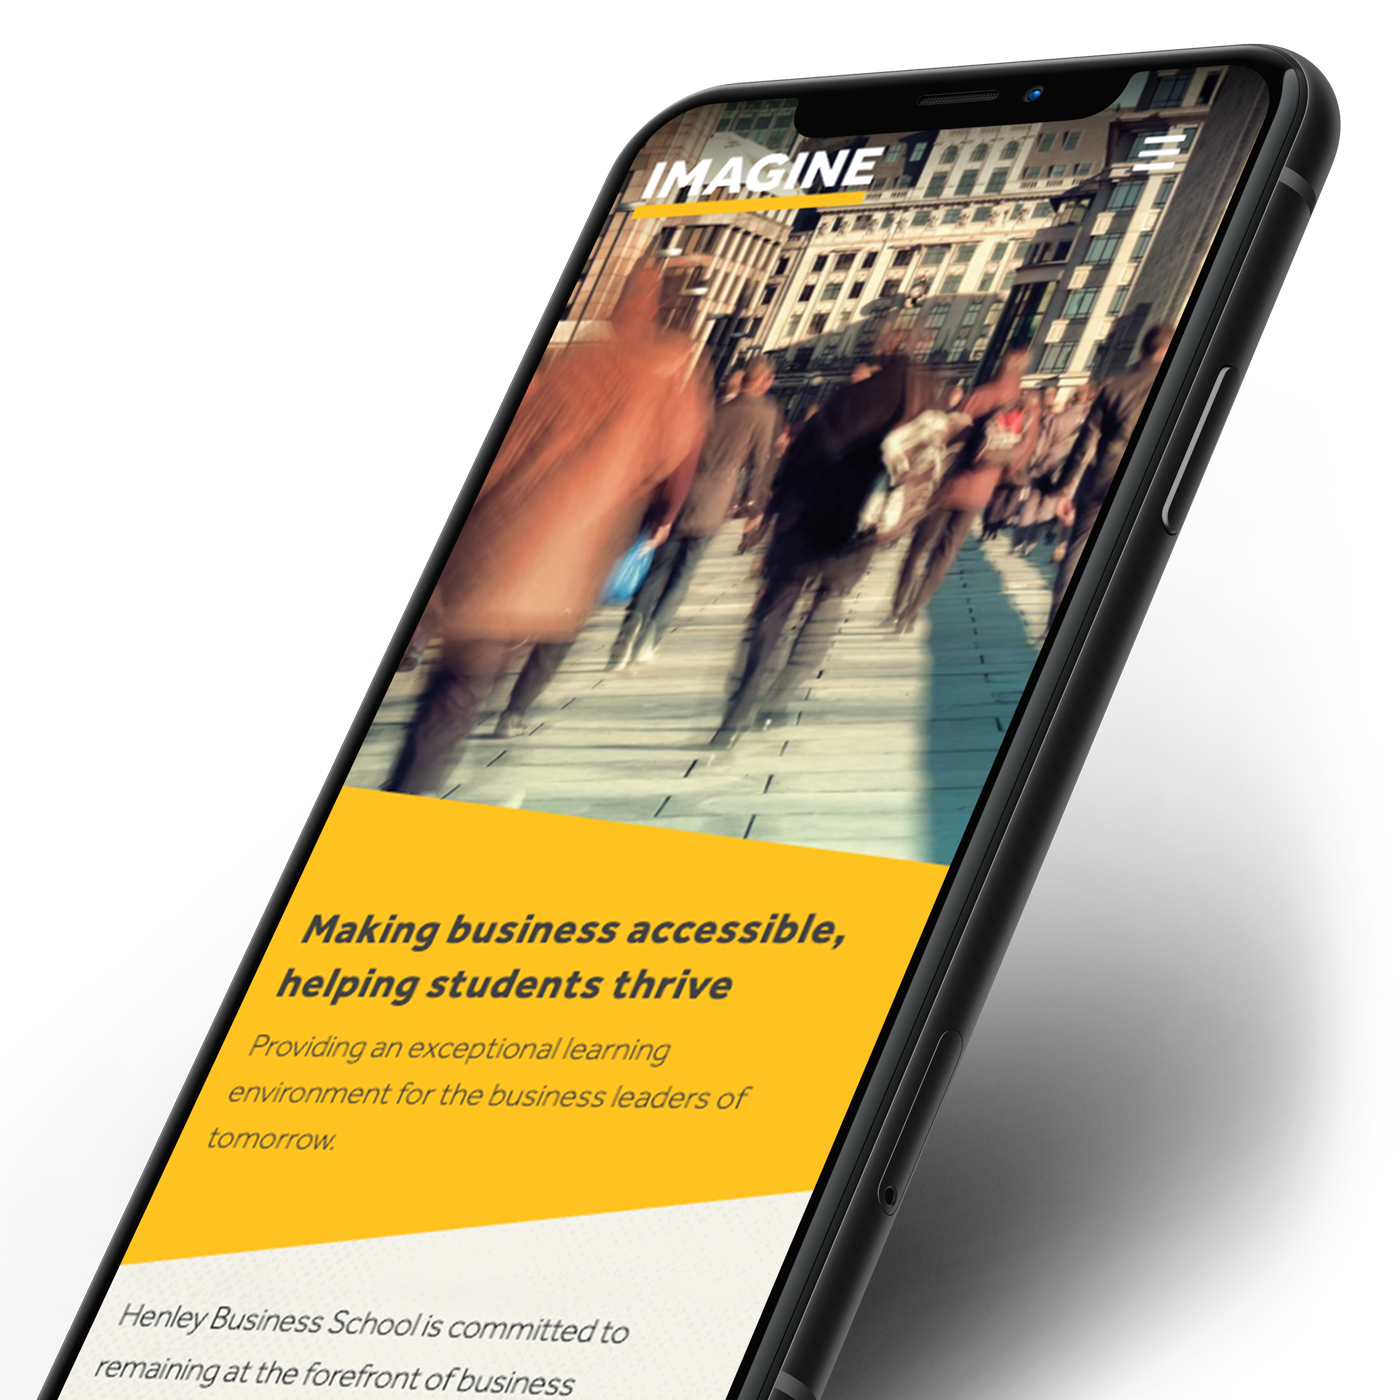 IMAGINE business accessibility article on iPhone XR